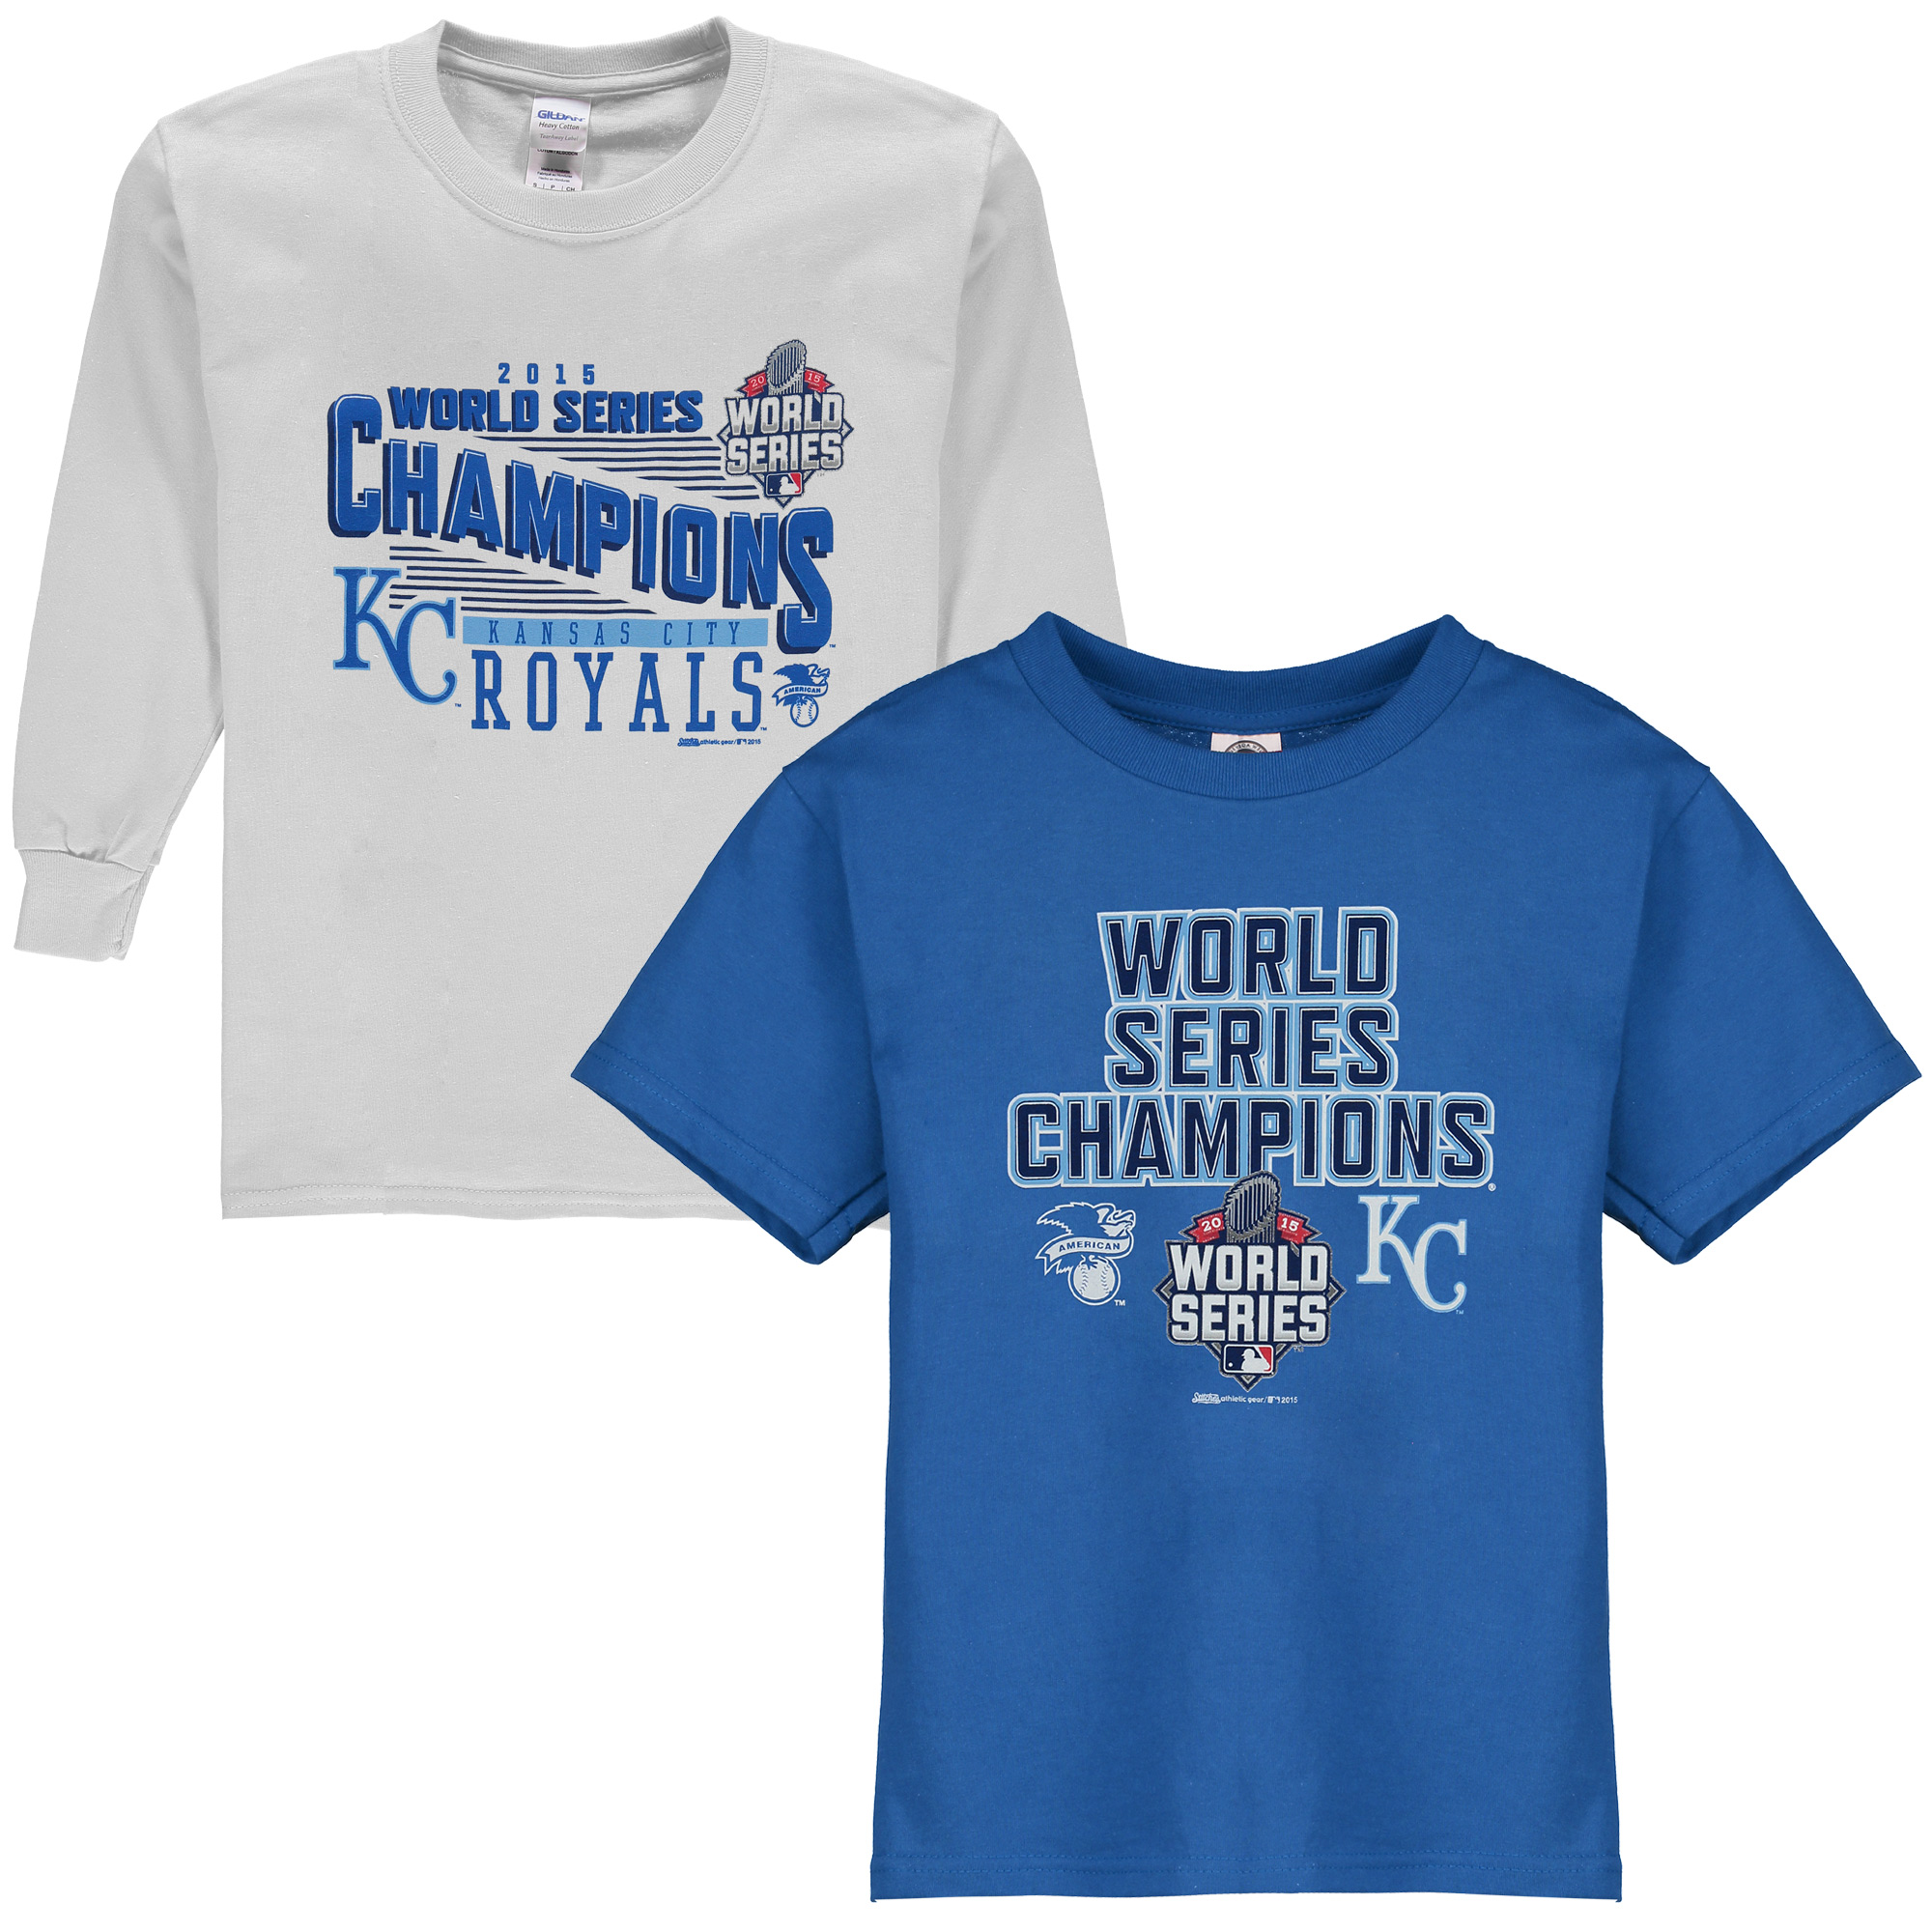 Kansas City Royals Stitches Youth 2015 World Series Champions 3-in-1 Combo T-Shirt Set - Royal - Yth L